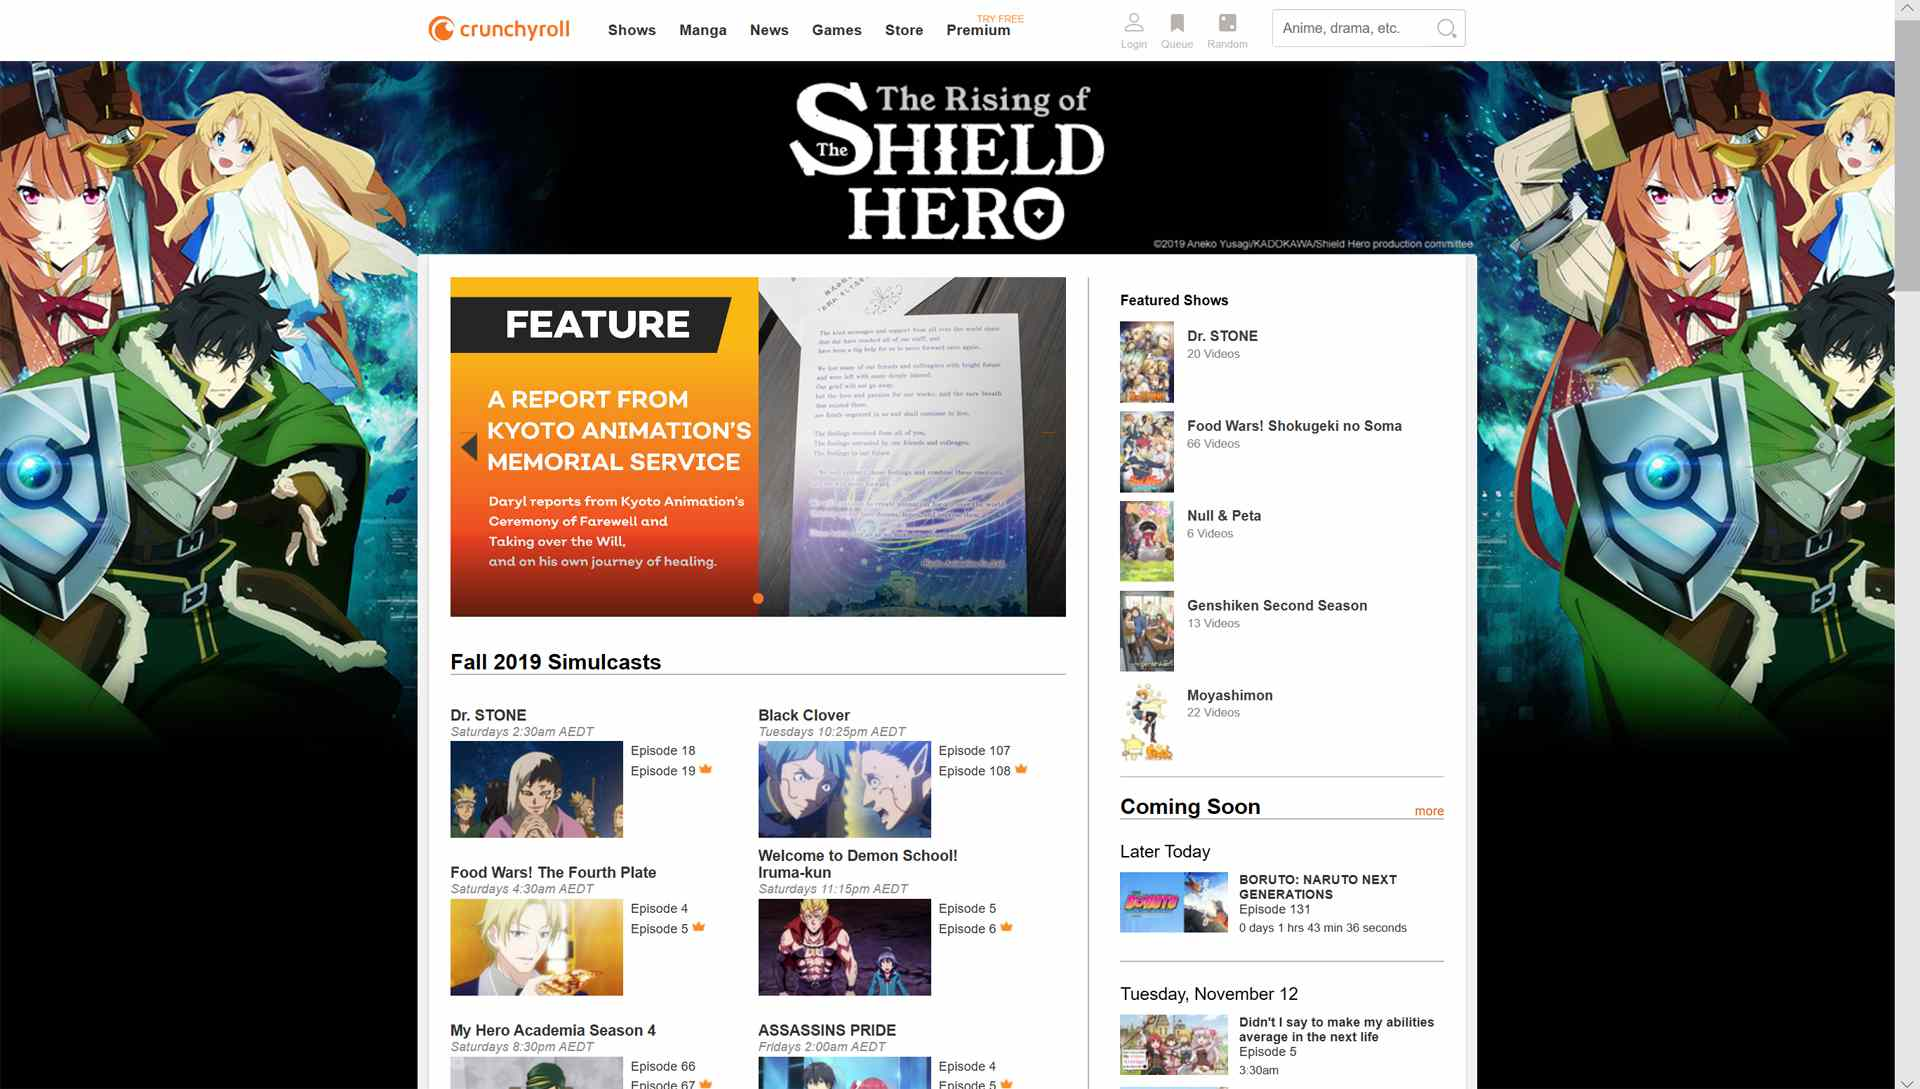 Front page of the Crunchyroll website.